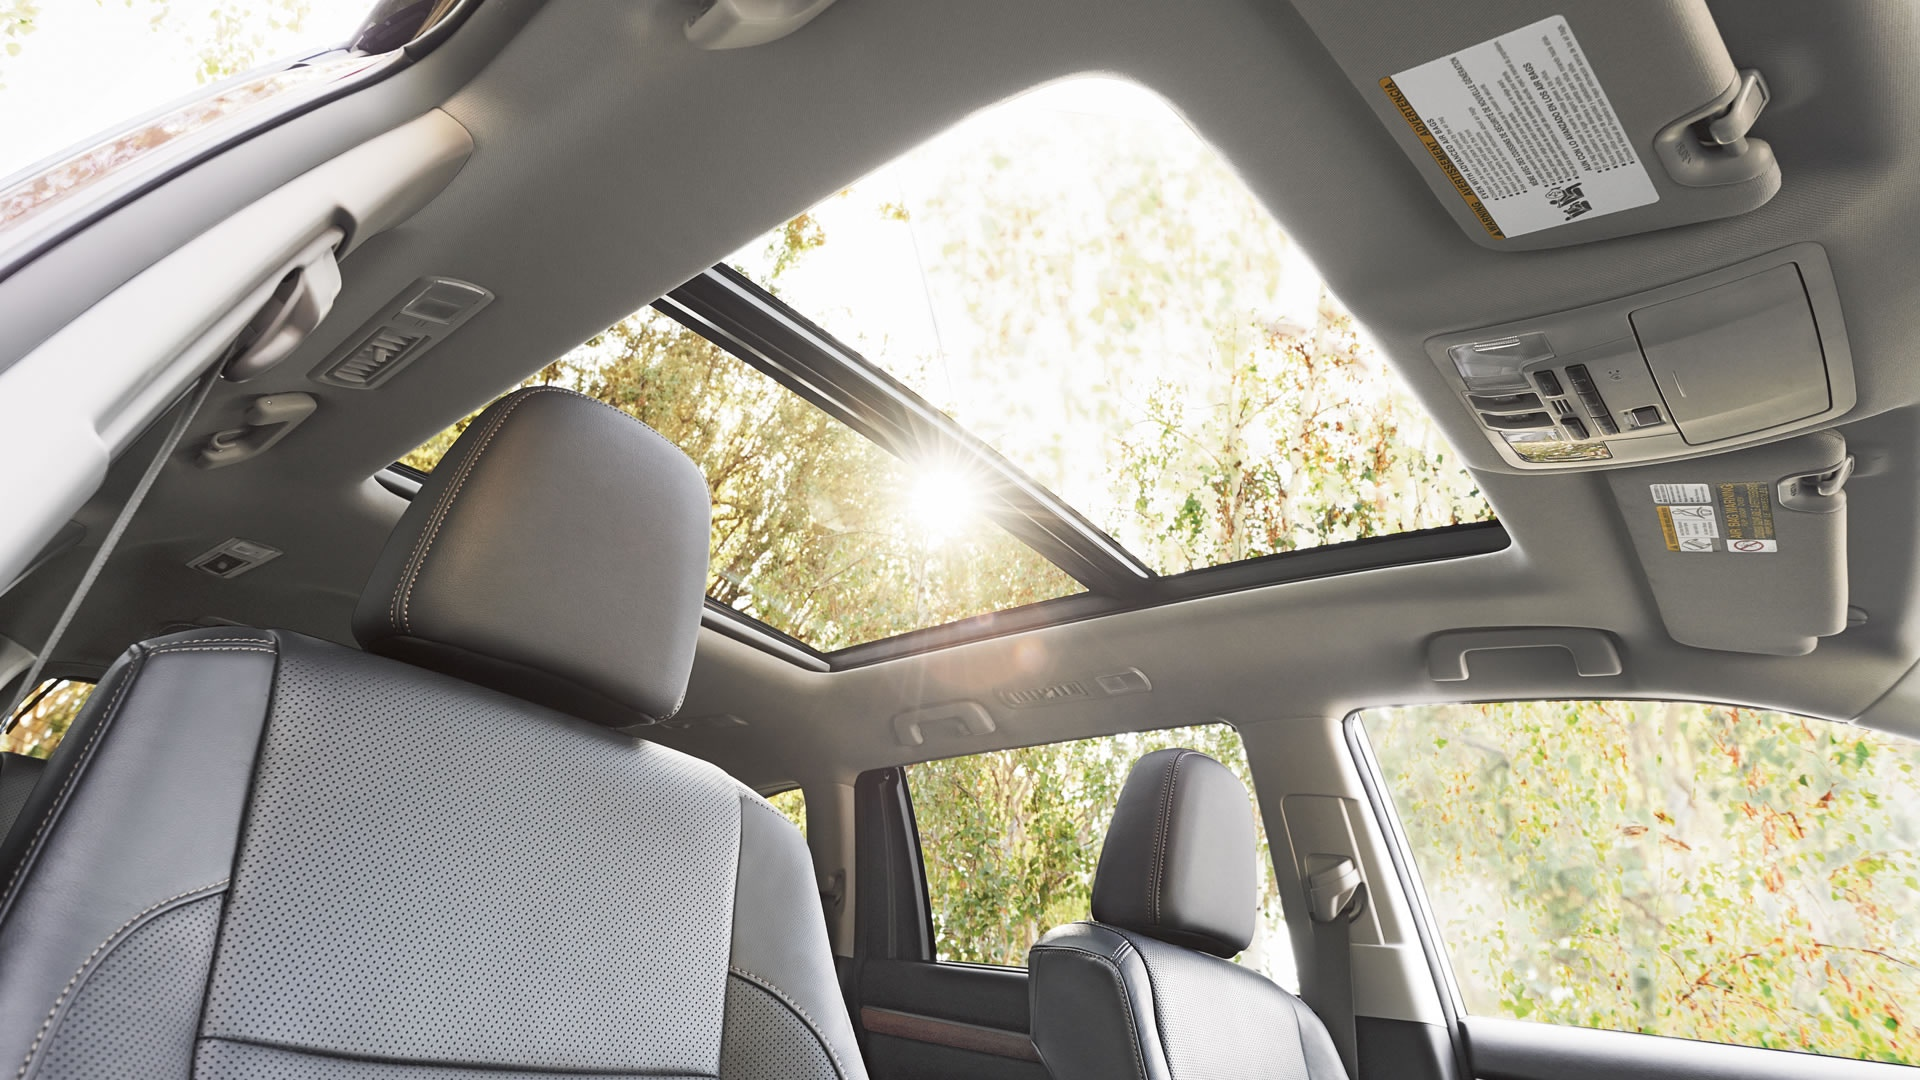 2019 Highlander Sunroof